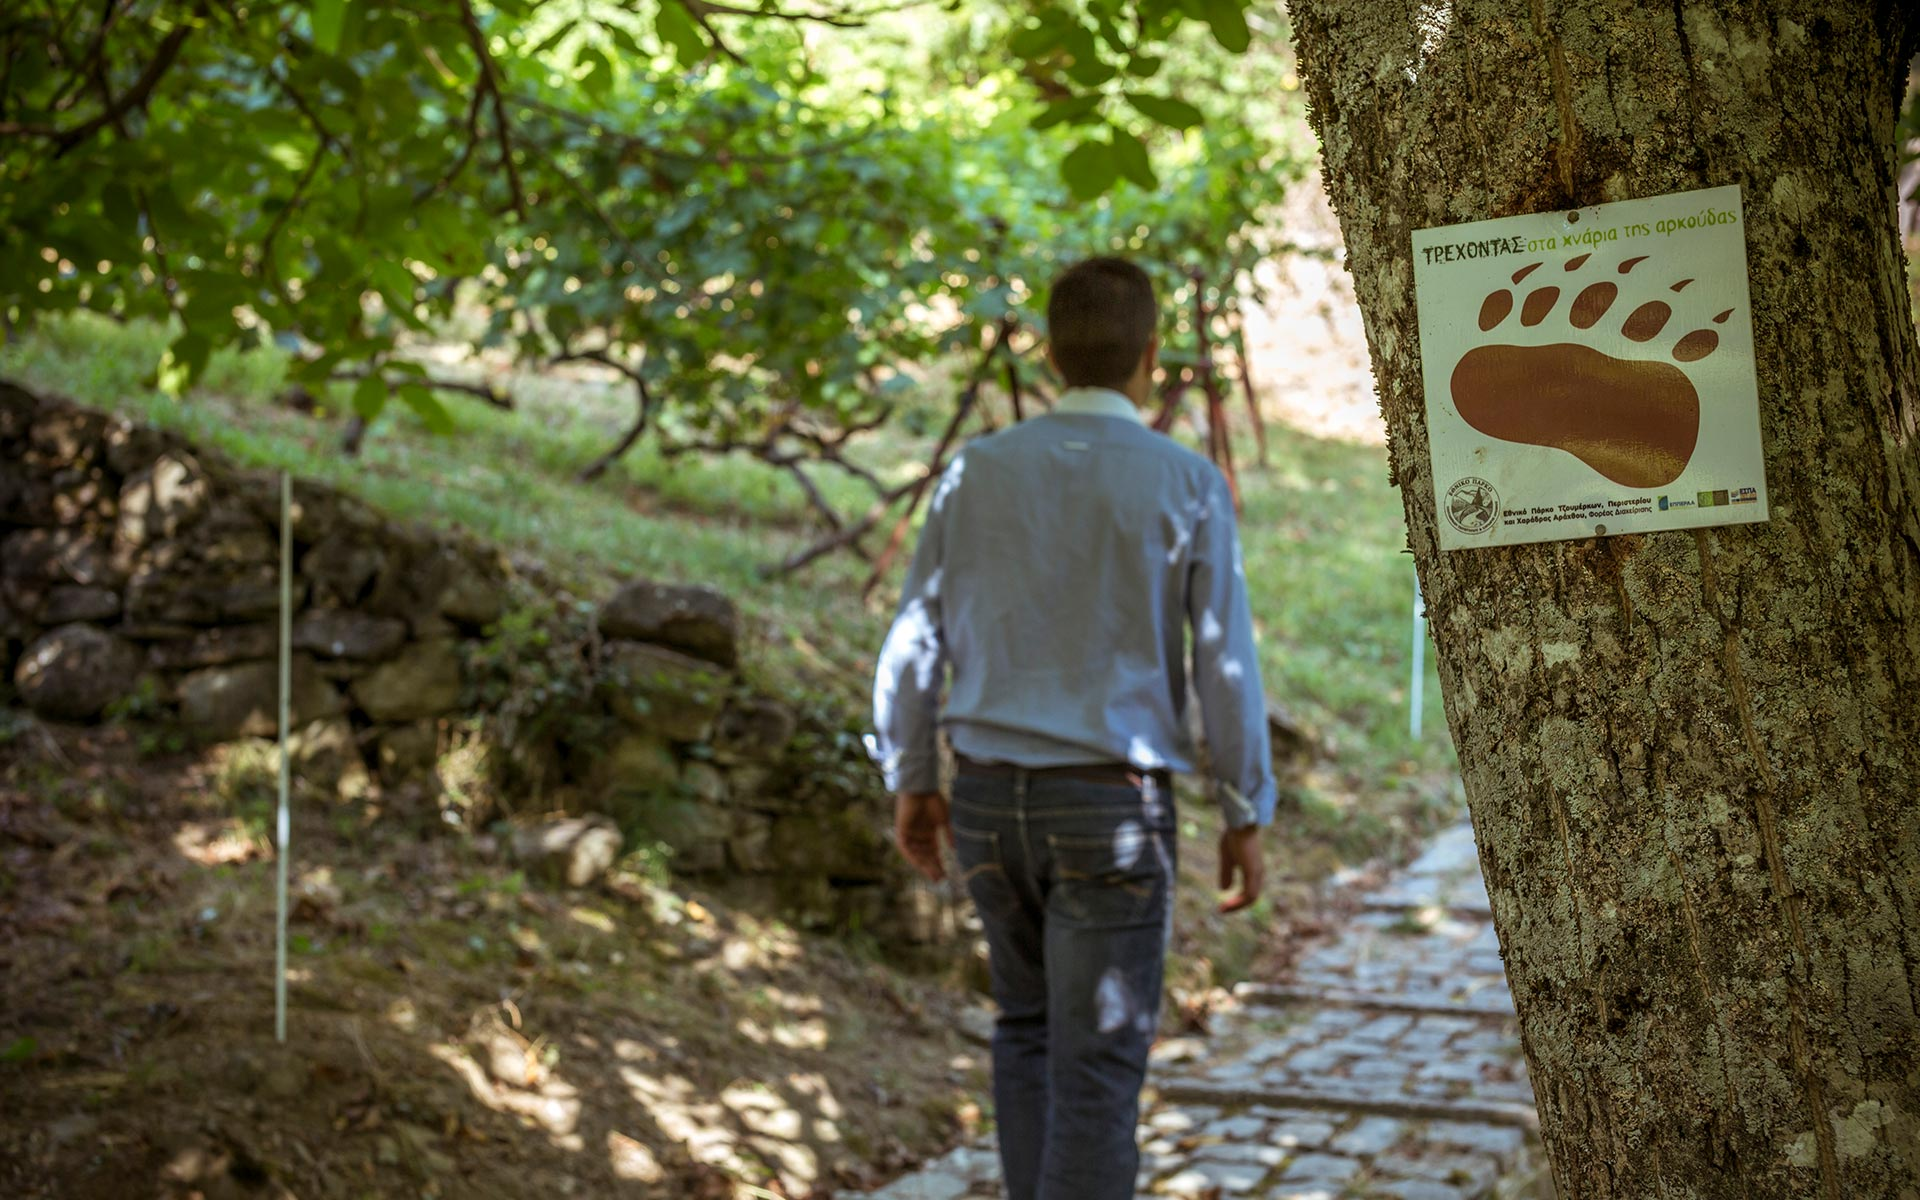 Grand Forest Metsovo nature trail